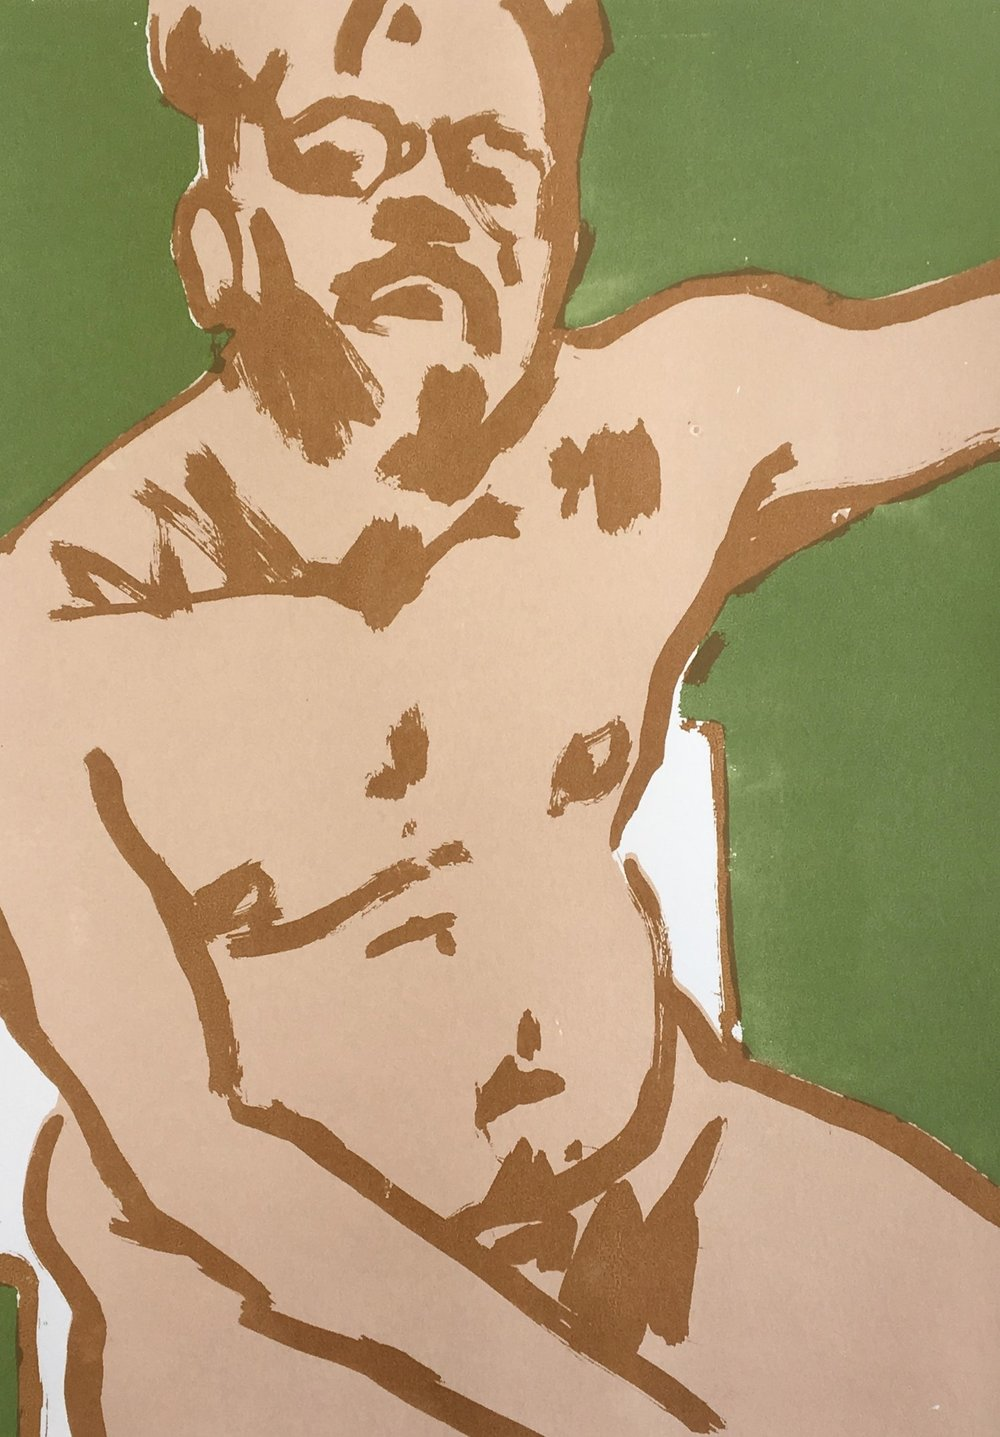 Naked Self-Portrait,  2017, screenprint